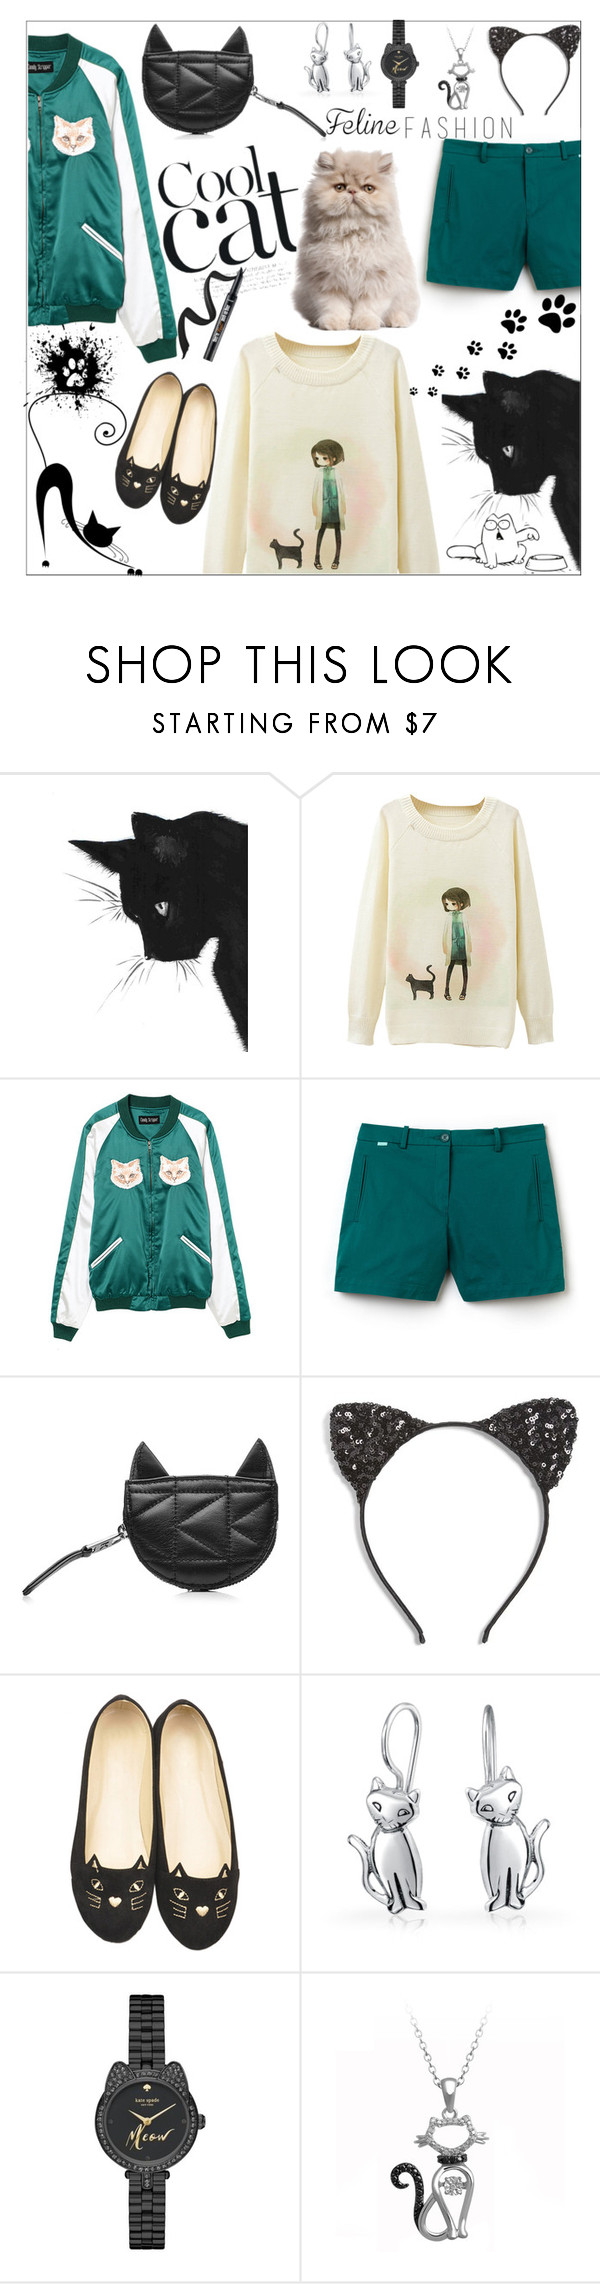 """""""Cute cat"""" by peta-5 ❤ liked on Polyvore featuring Lacoste, Karl Lagerfeld, Cara, WithChic, Bling Jewelry and Kate Spade"""